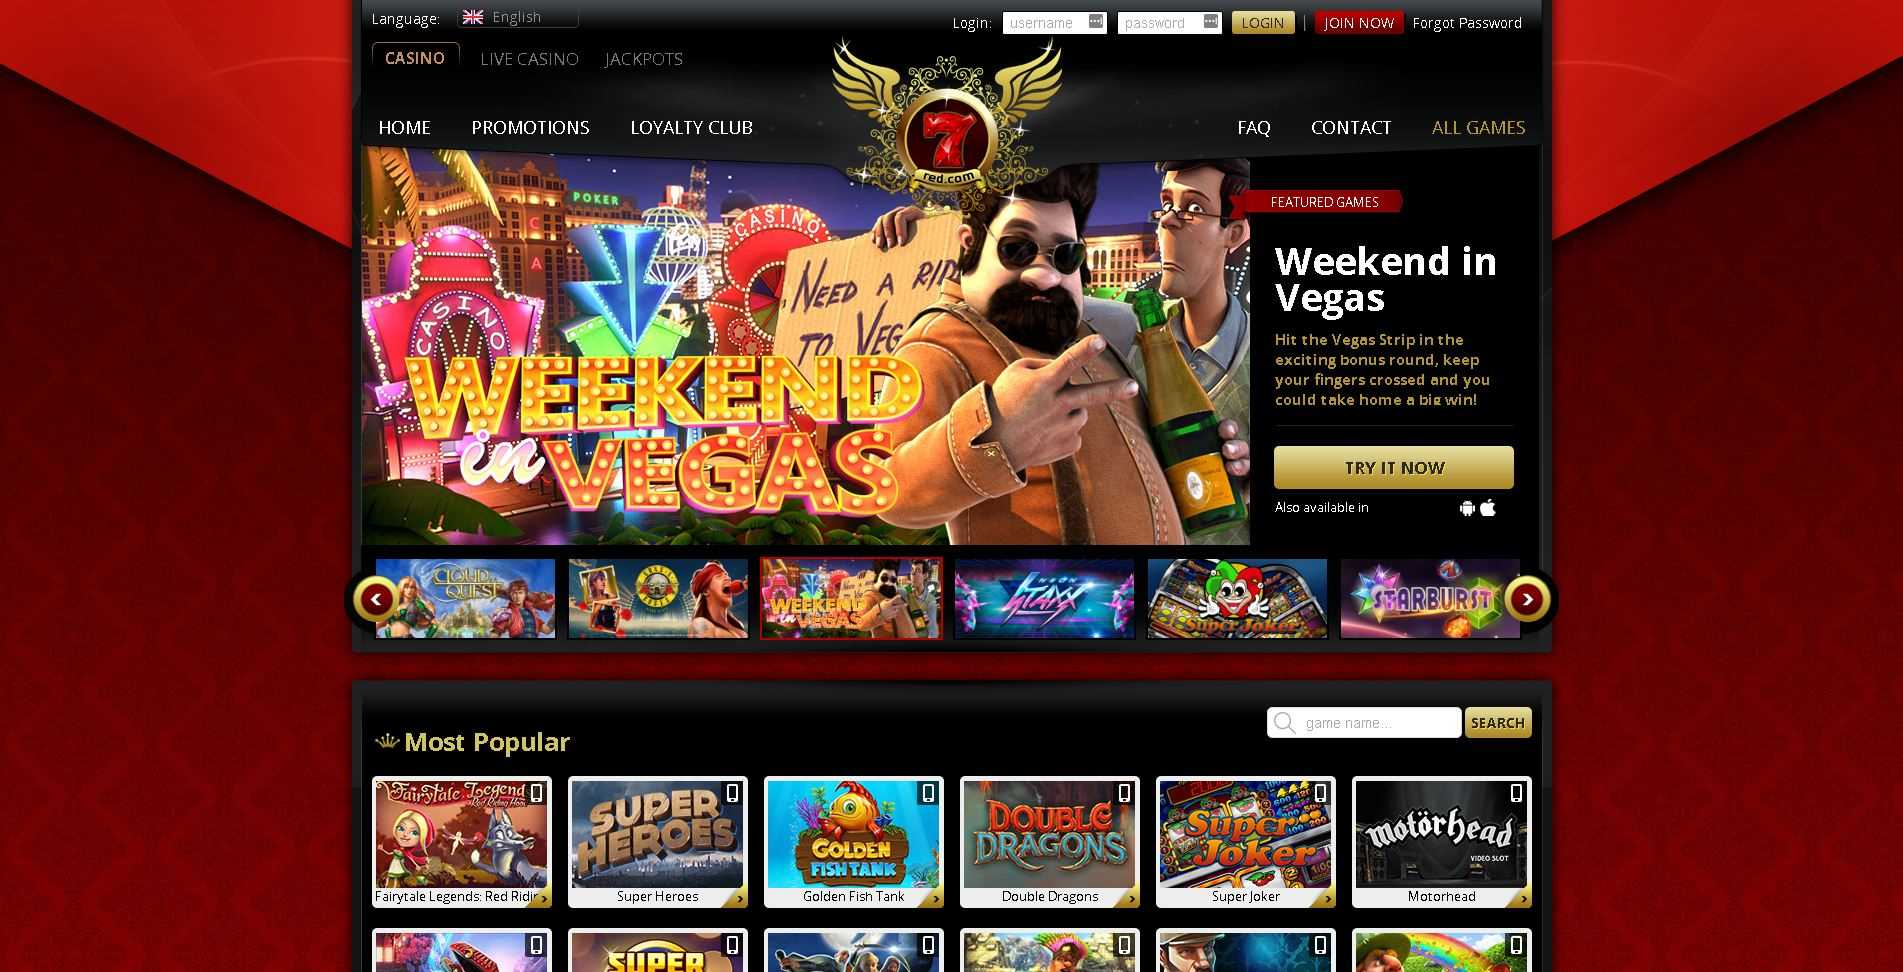 7Red Casino Games